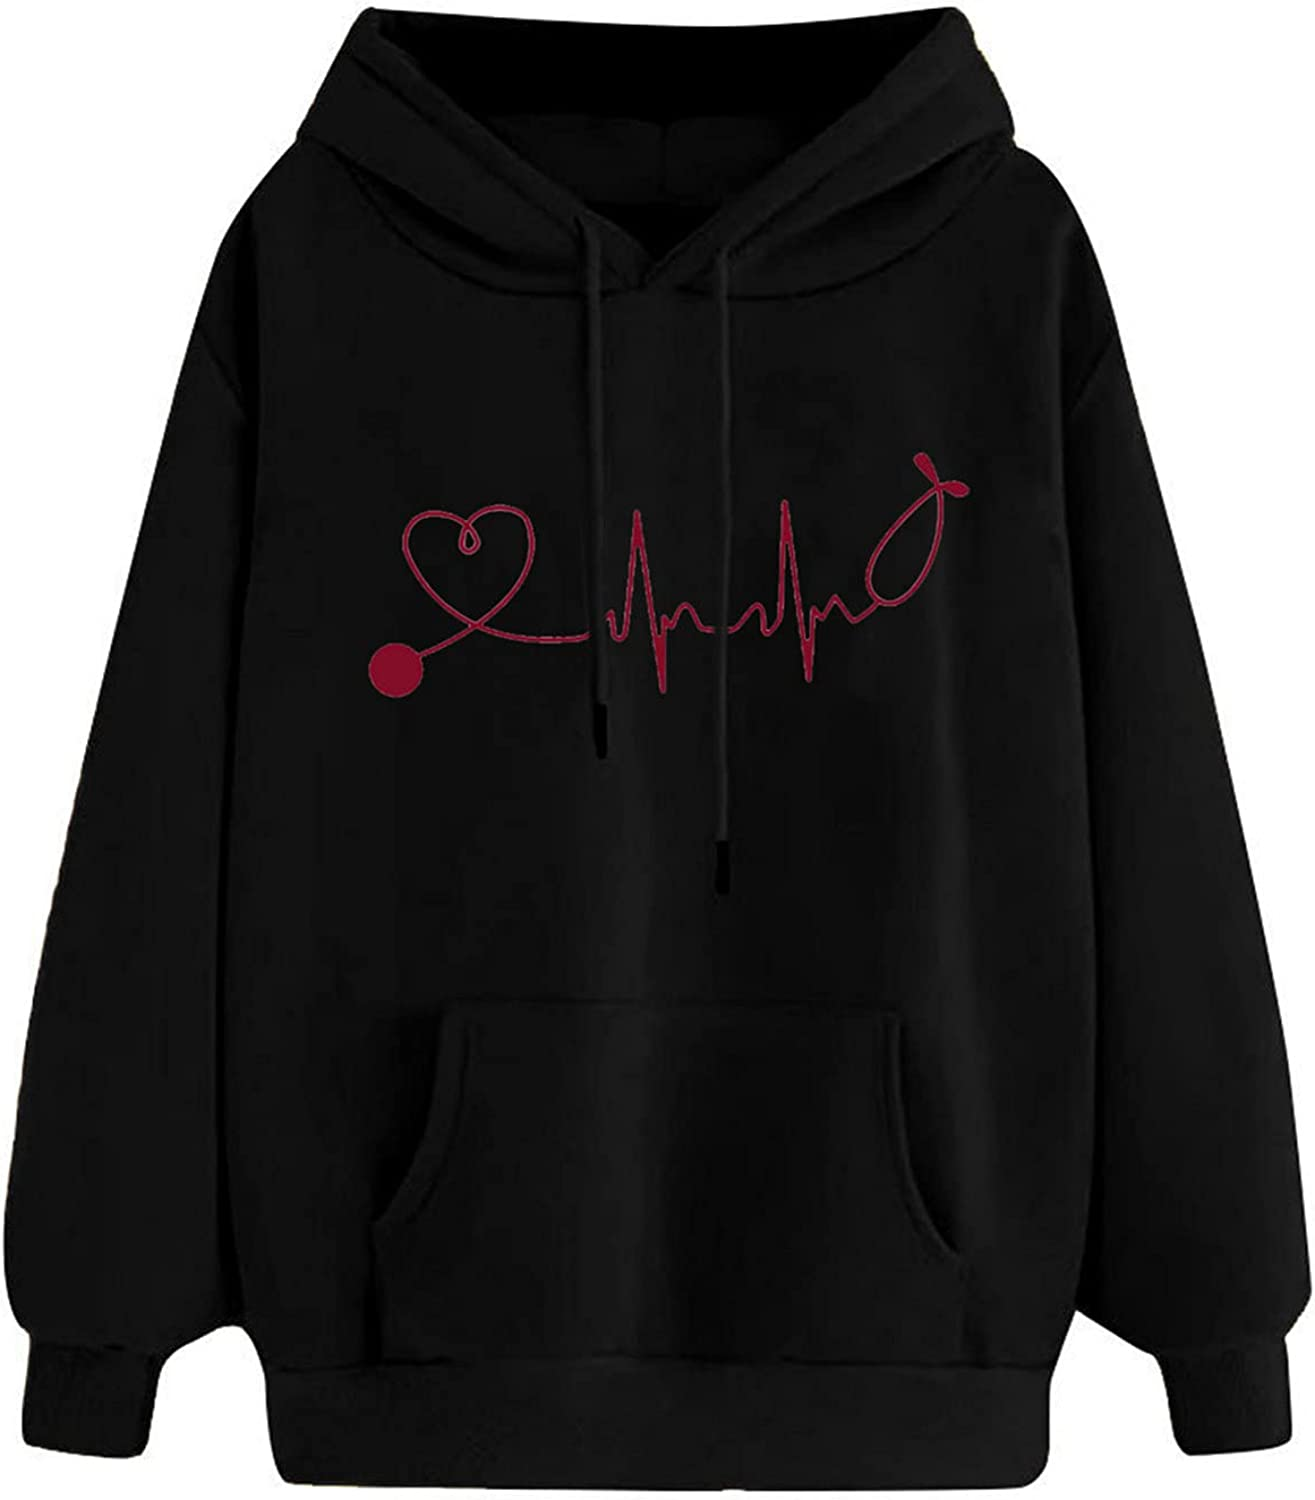 Graphic Hoodies for Women Fashion Printed Hooded Tops Casual Long Sleeve Sweatshirts Oversized Autumn Winter Pullover